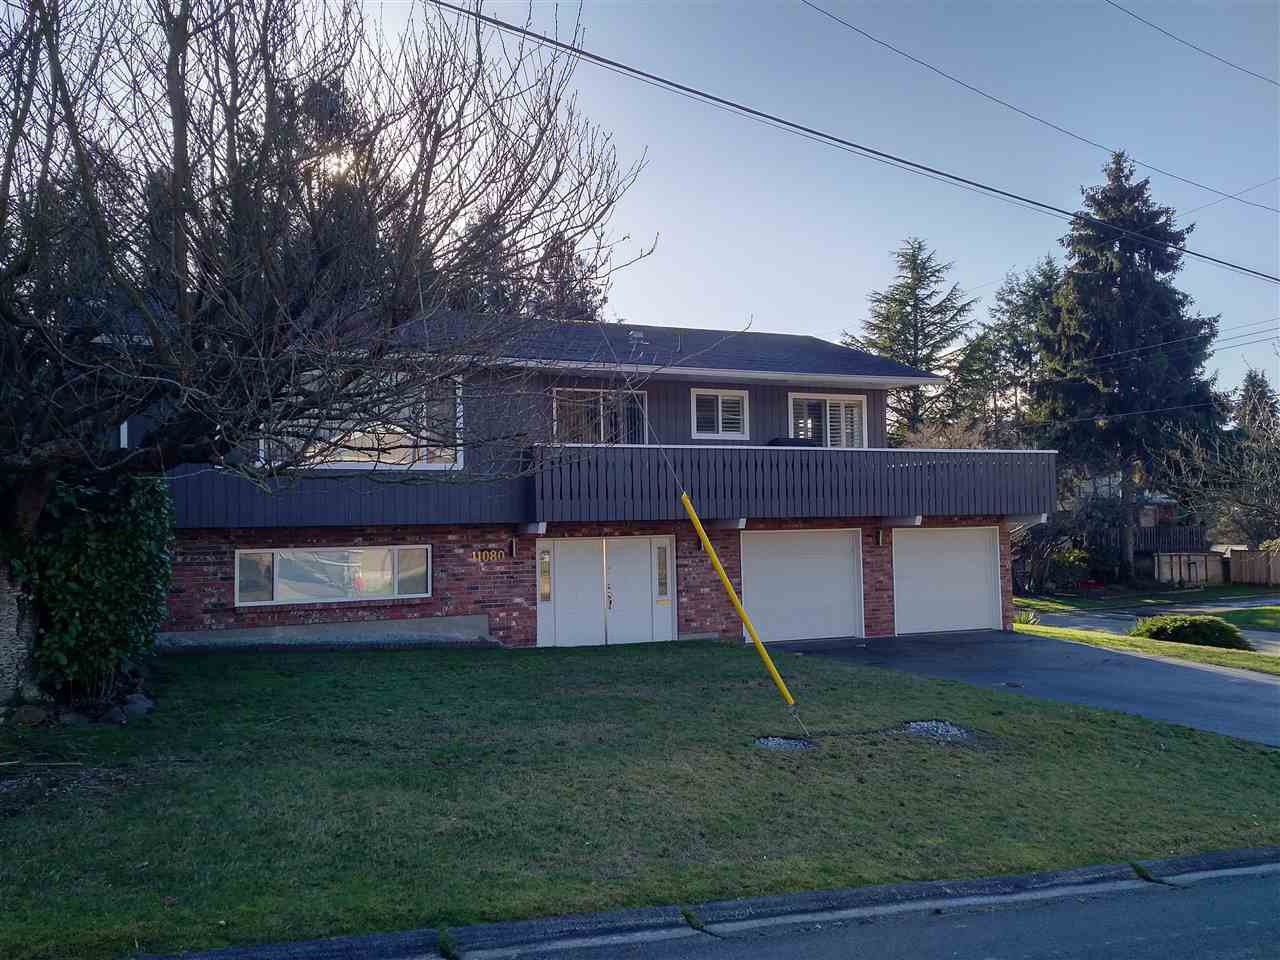 Main Photo: 11080 72A Avenue in Delta: Nordel House for sale (N. Delta)  : MLS®# R2337048